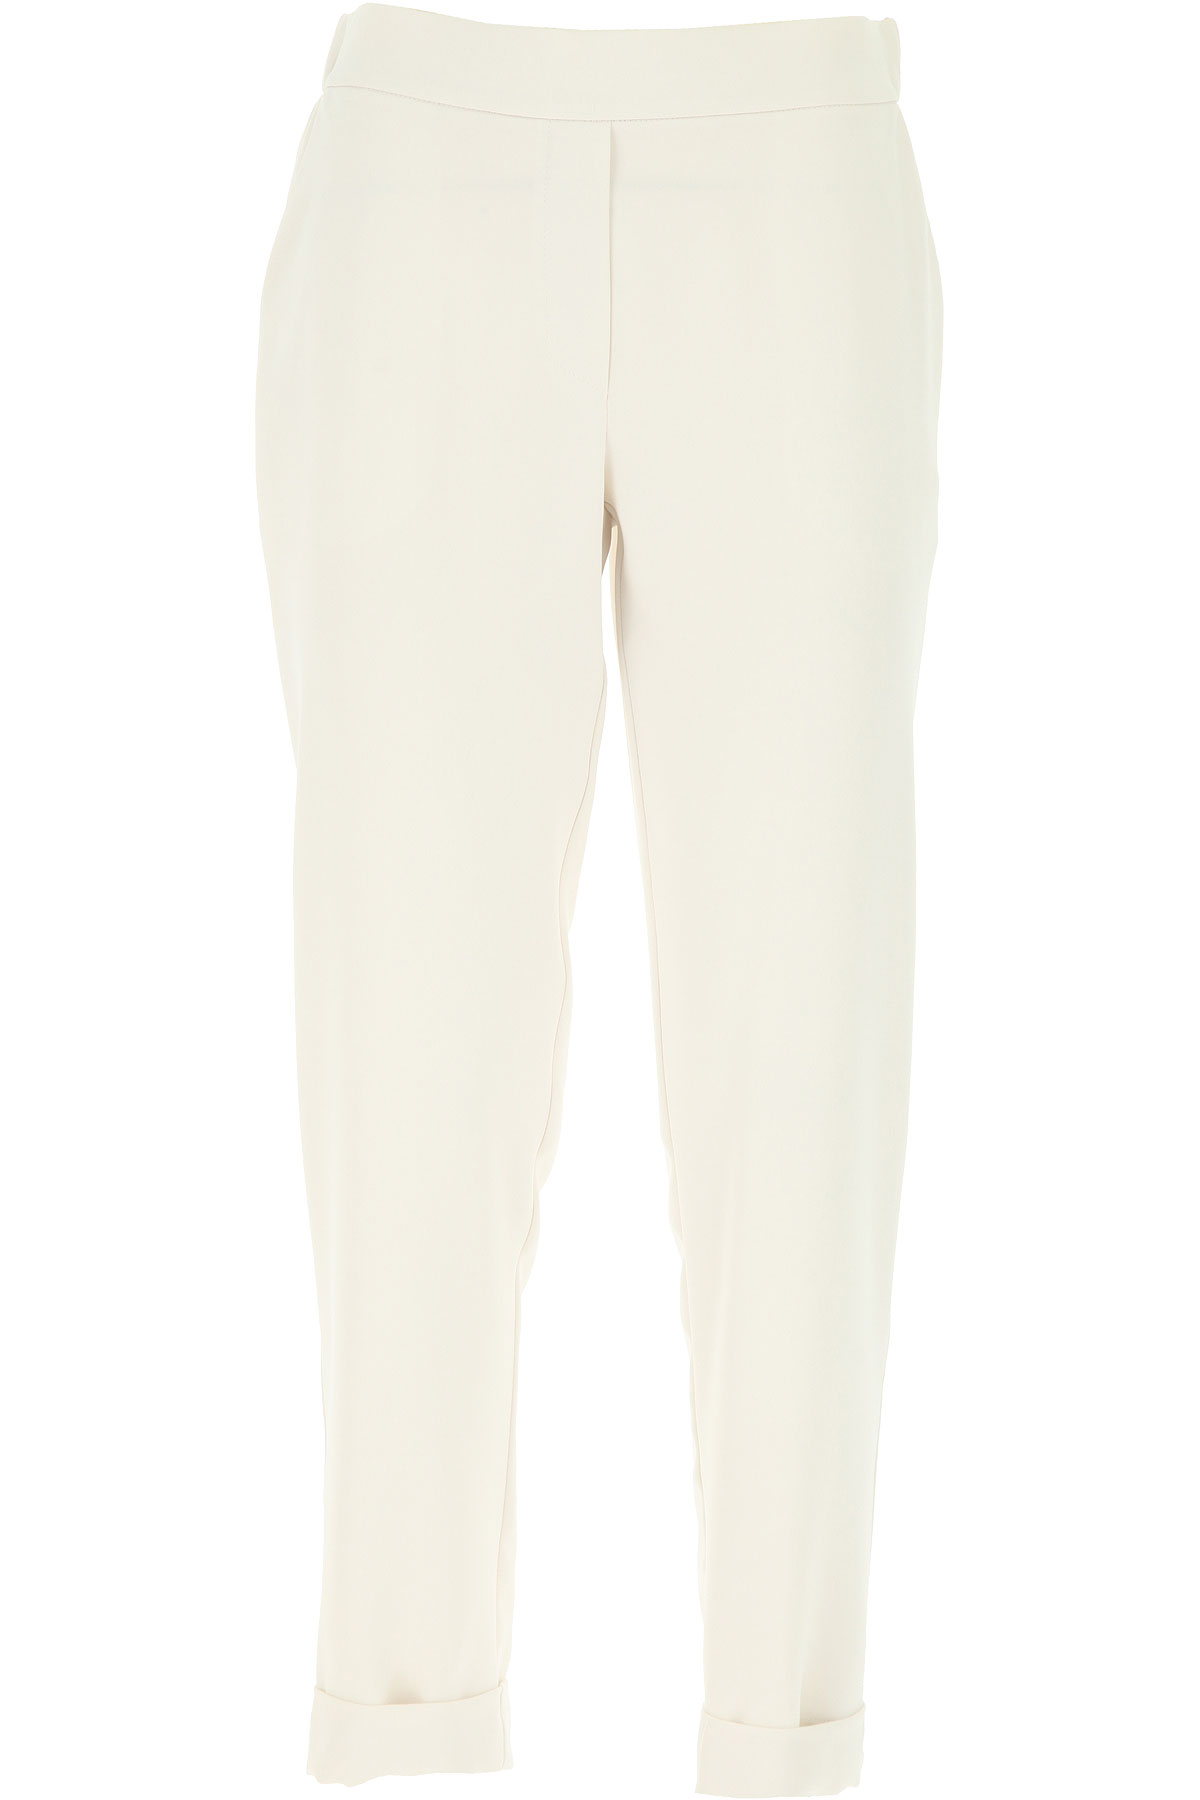 P.A.R.O.S.H. Pants for Women On Sale, Milk, polyester, 2019, 26 28 4 6